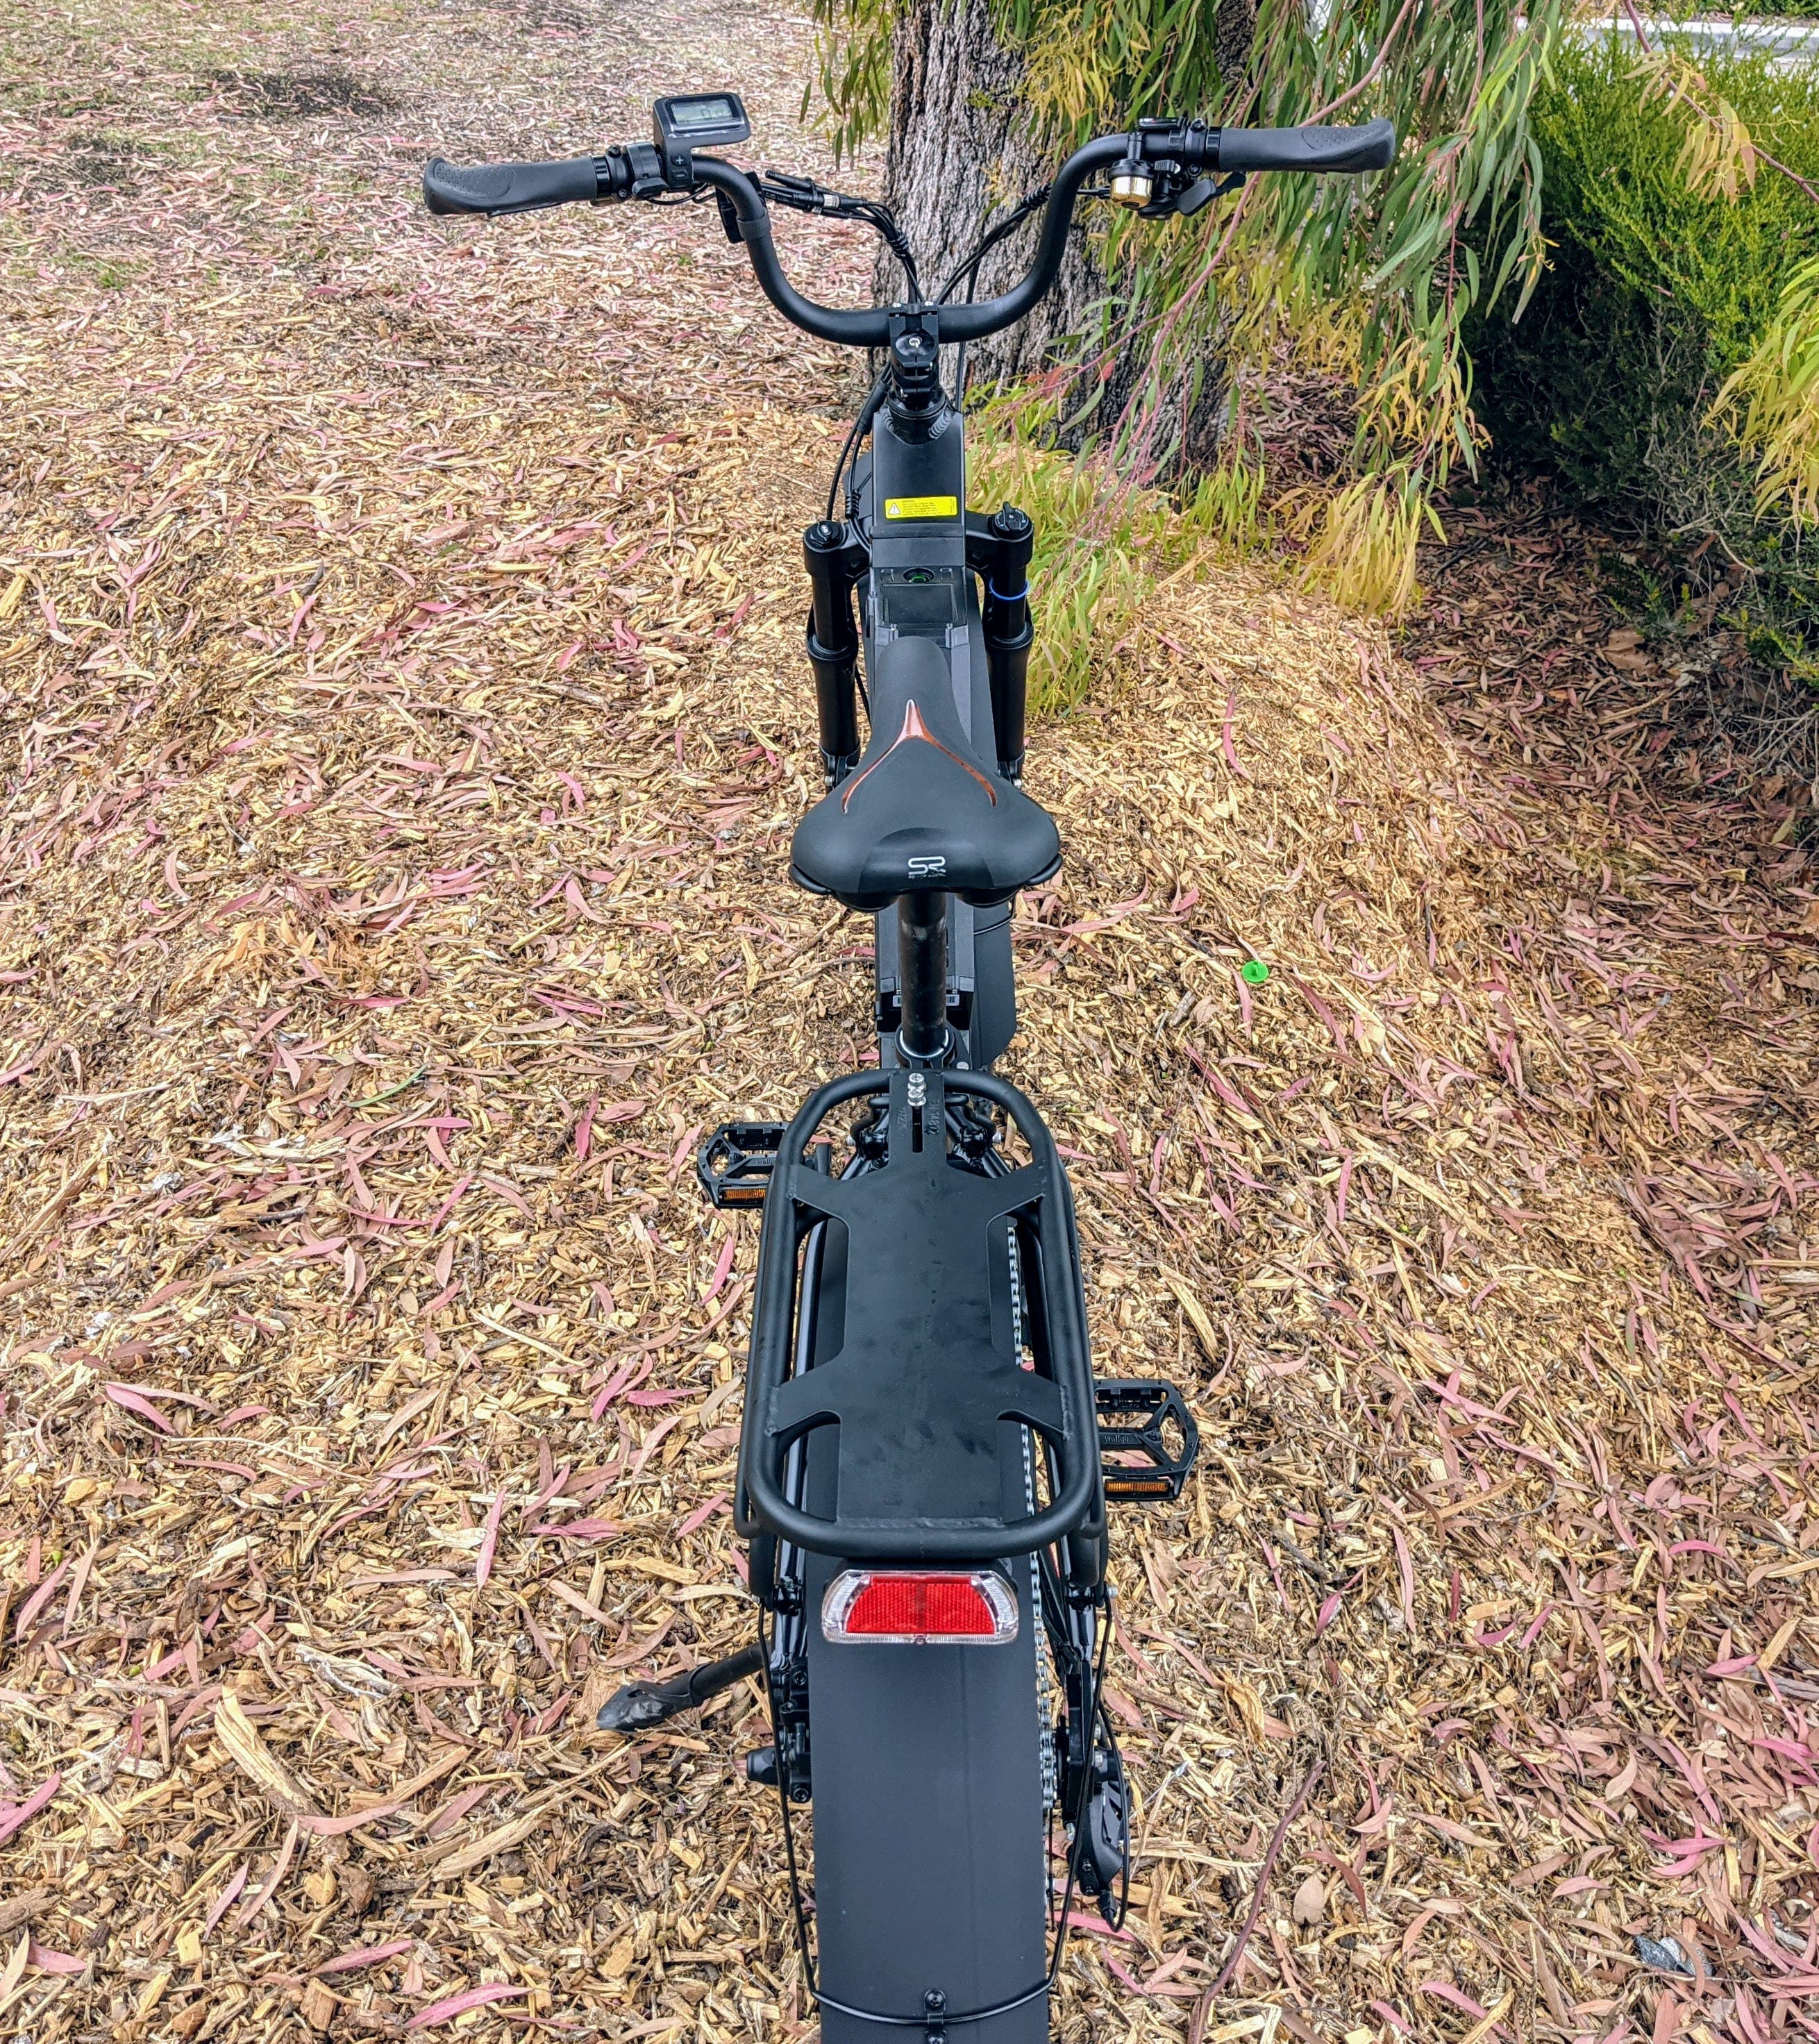 Juiced RipCurrent S Step-Through Electric Bike